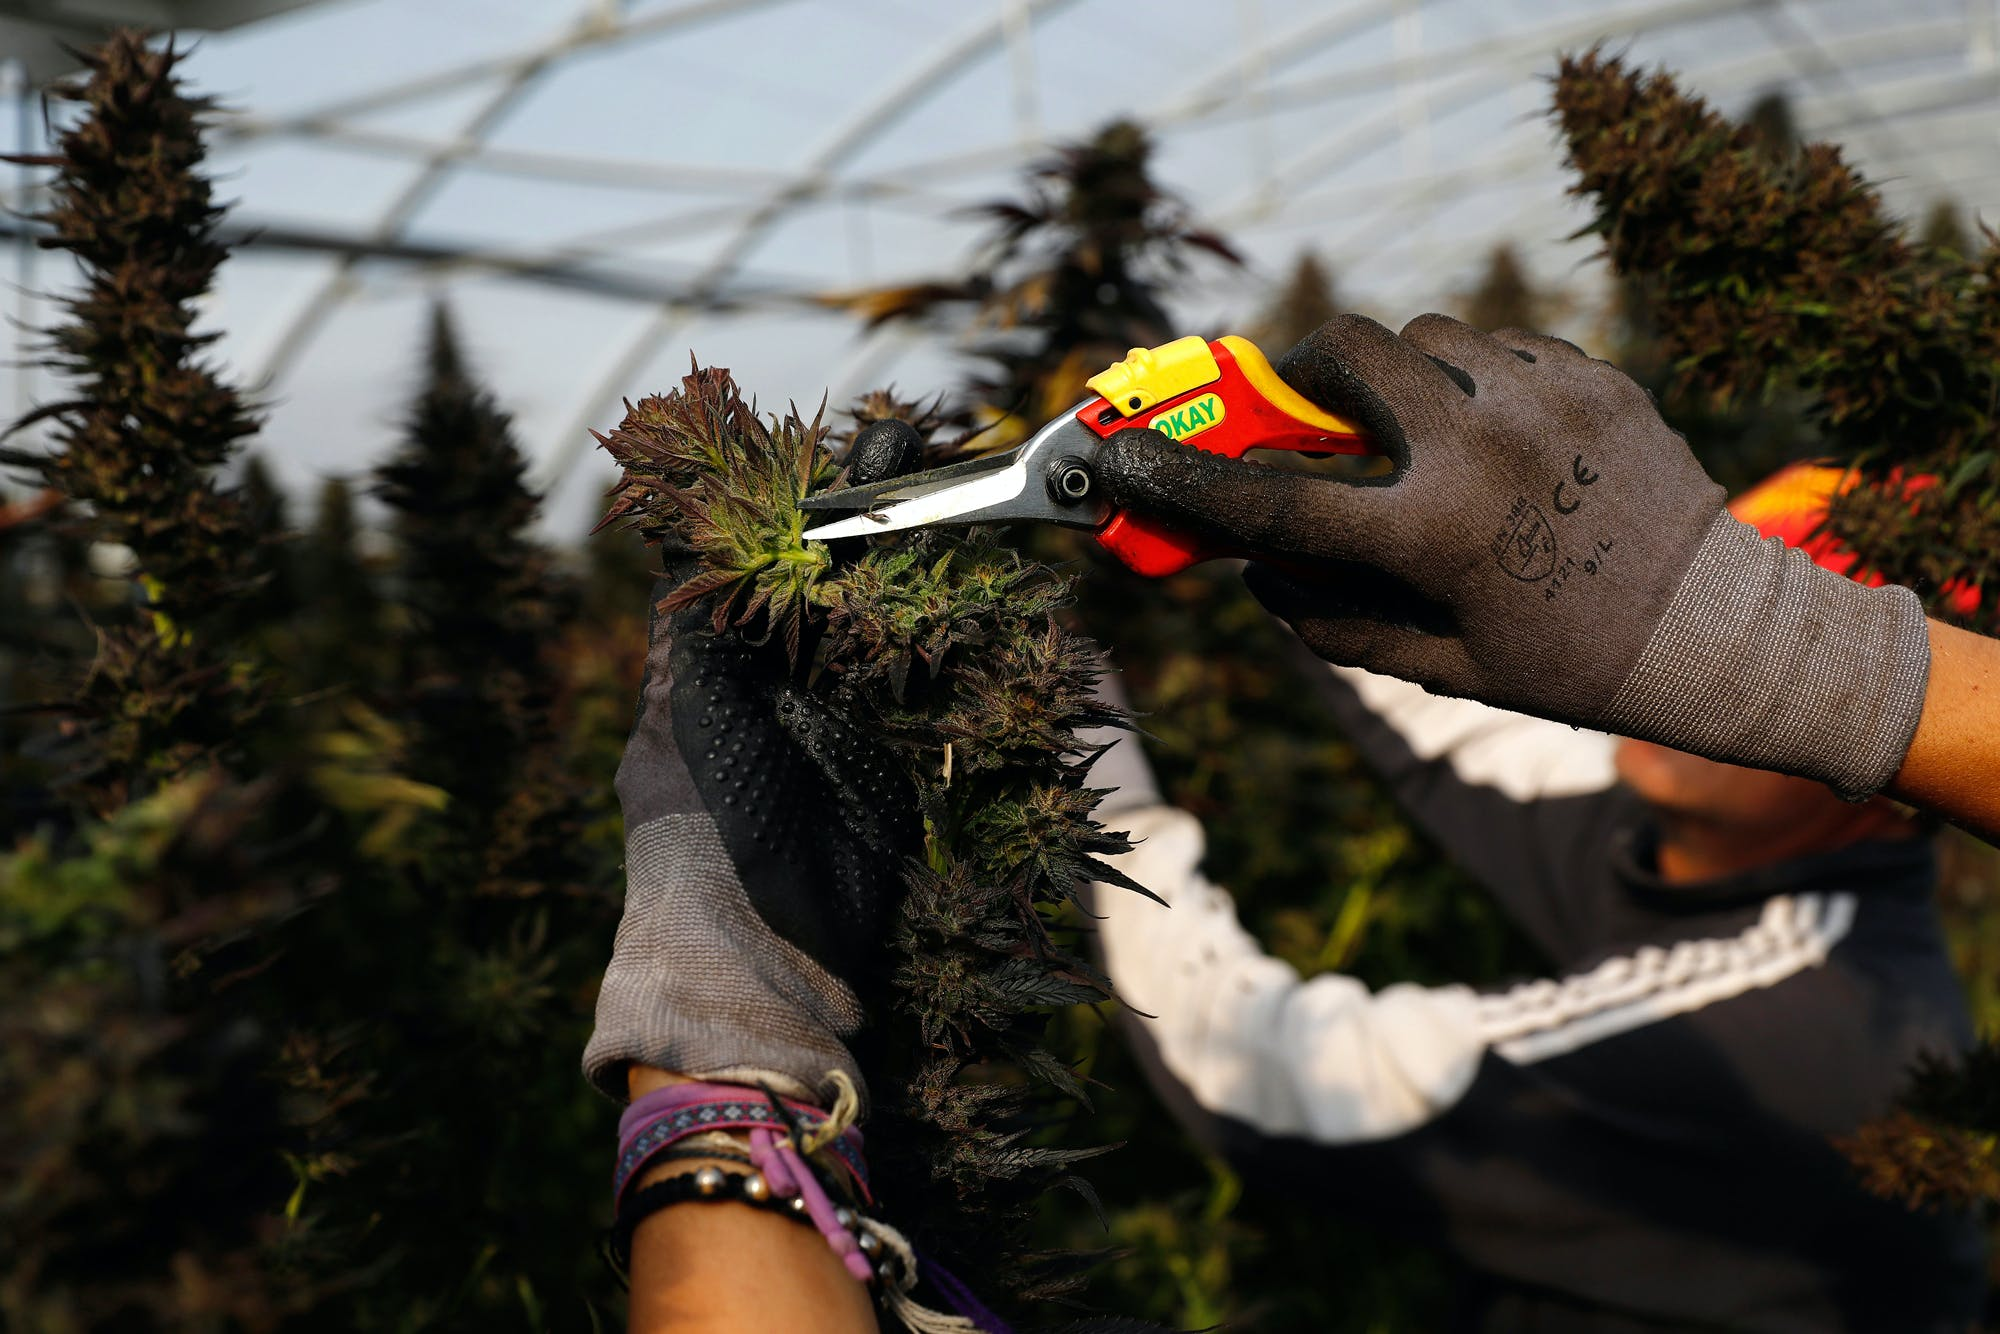 CannabisFarm The 5 best products for outdoor smoking sessions